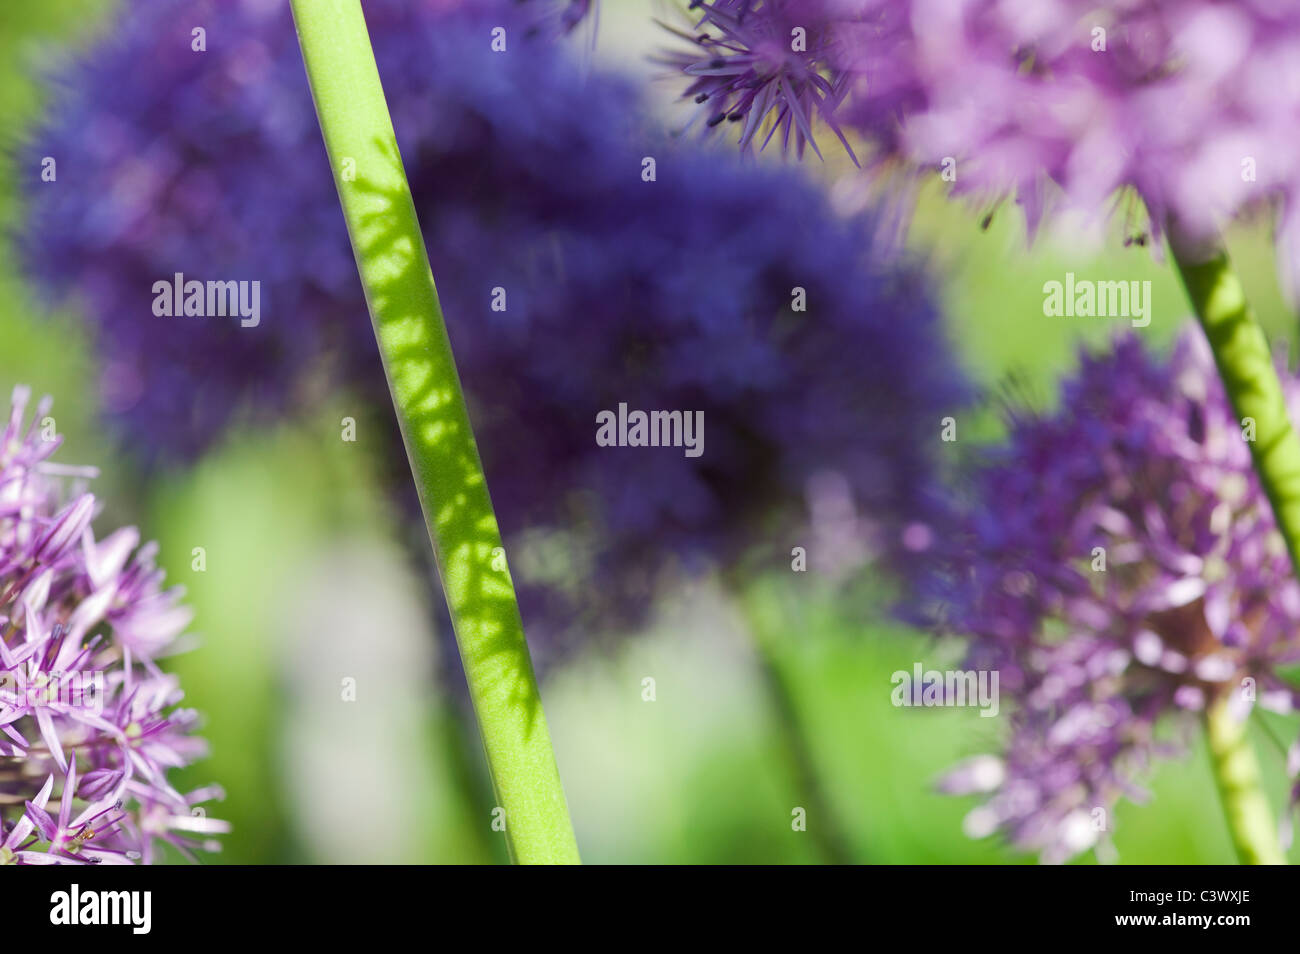 Allium 'Globemaster'. flowers stems sunlight and shadows abstract Stock Photo